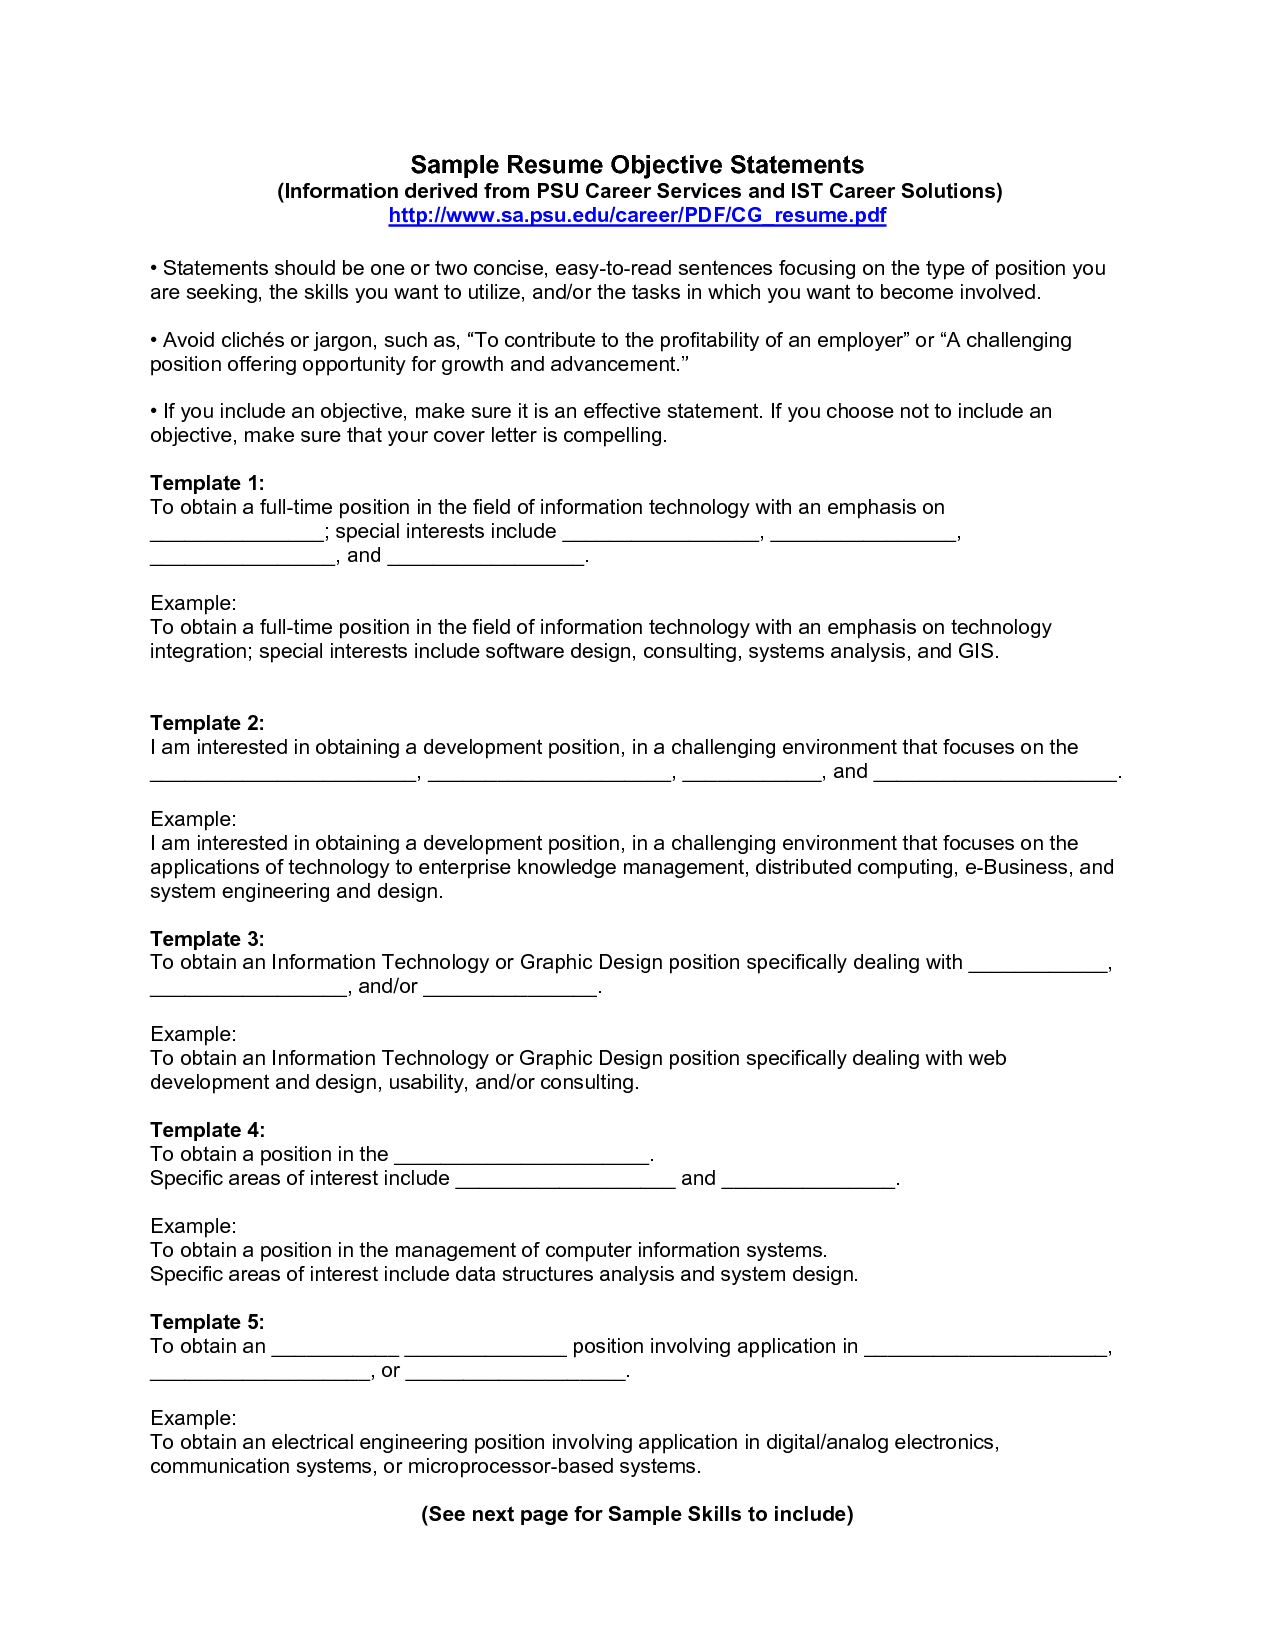 Great Resume Objective Examples Statement And Resume Career Objective Statement  Examples  Objective Statement On Resume